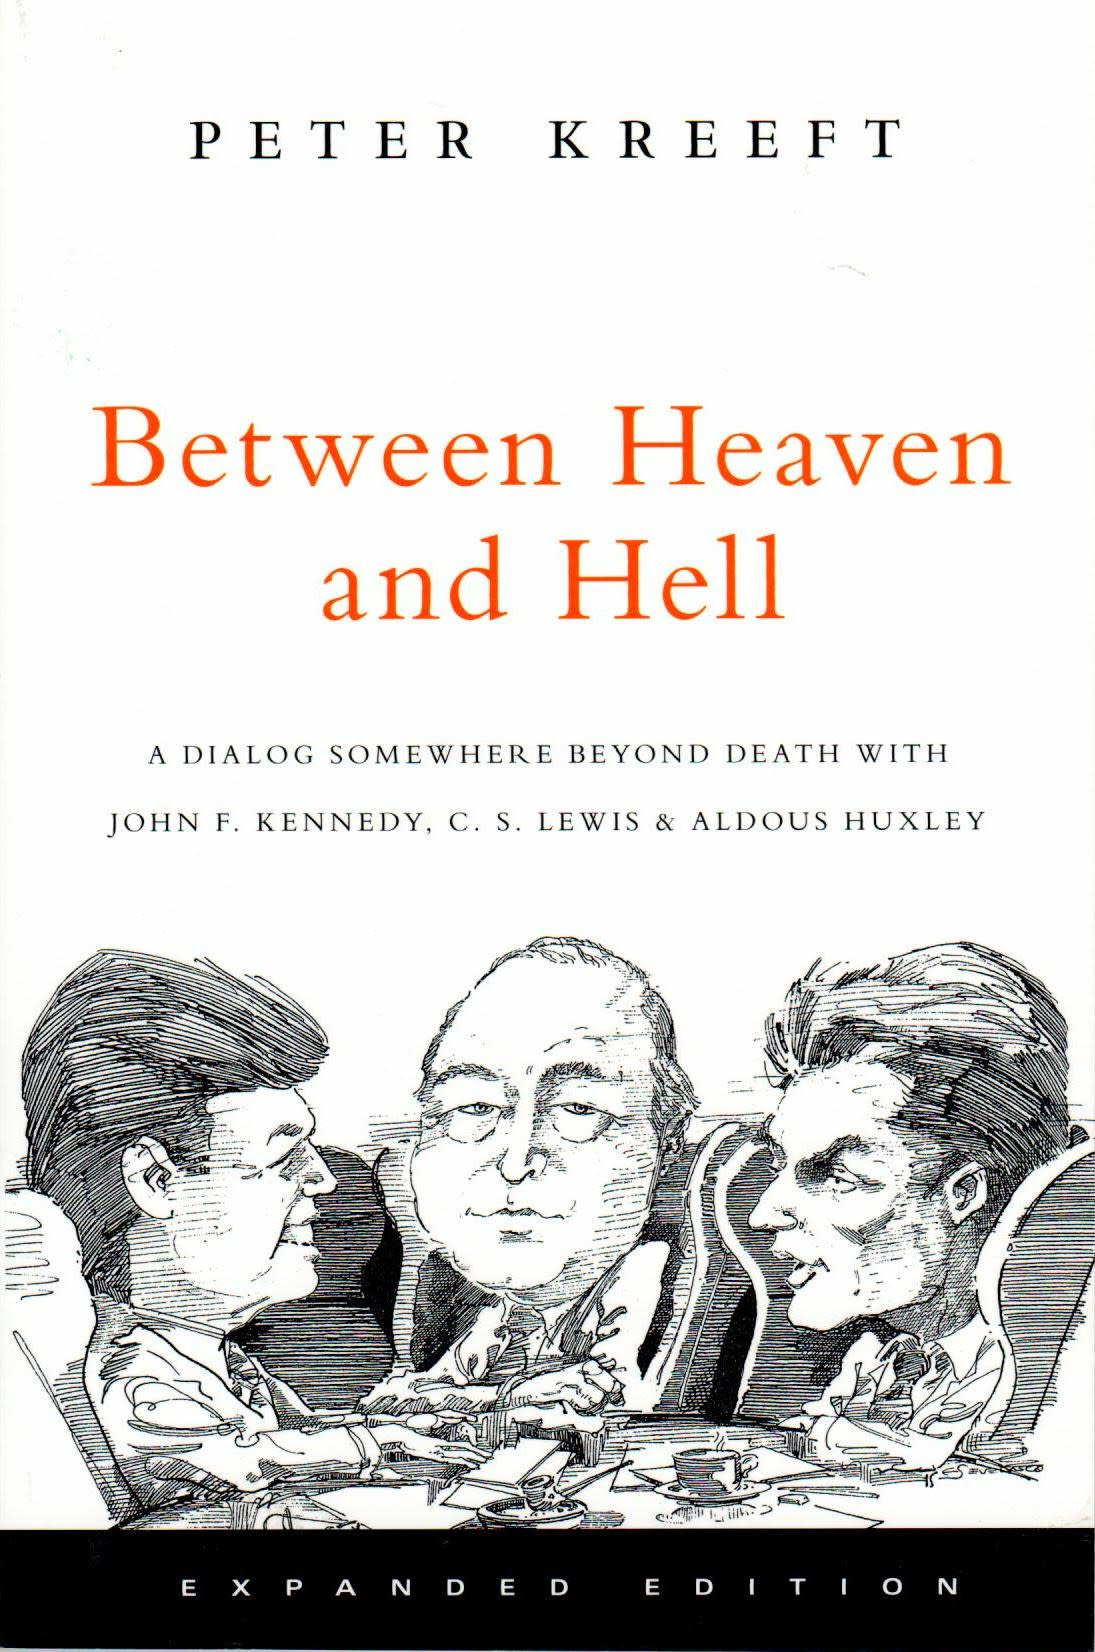 Between Heaven and Hell: A Dialogue Somewhere Beyond Death With John F. Kennedy, C. S. Lewis & Aldous Huxley